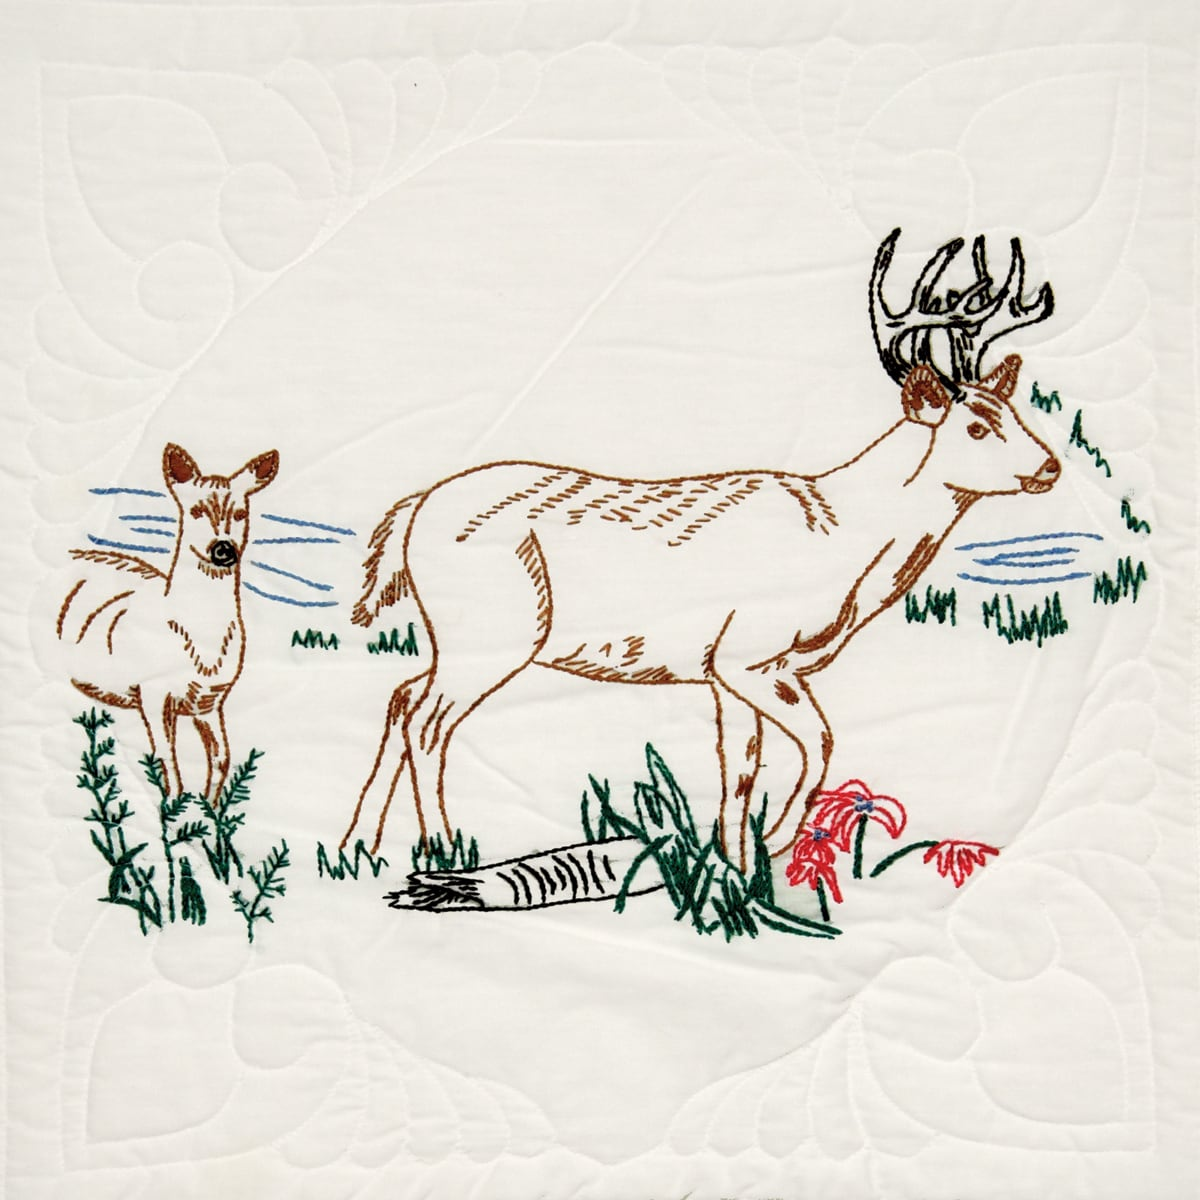 Fairway Stamped Quilt Blocks 18inX18in 6/PkgDeer (Deer), ...